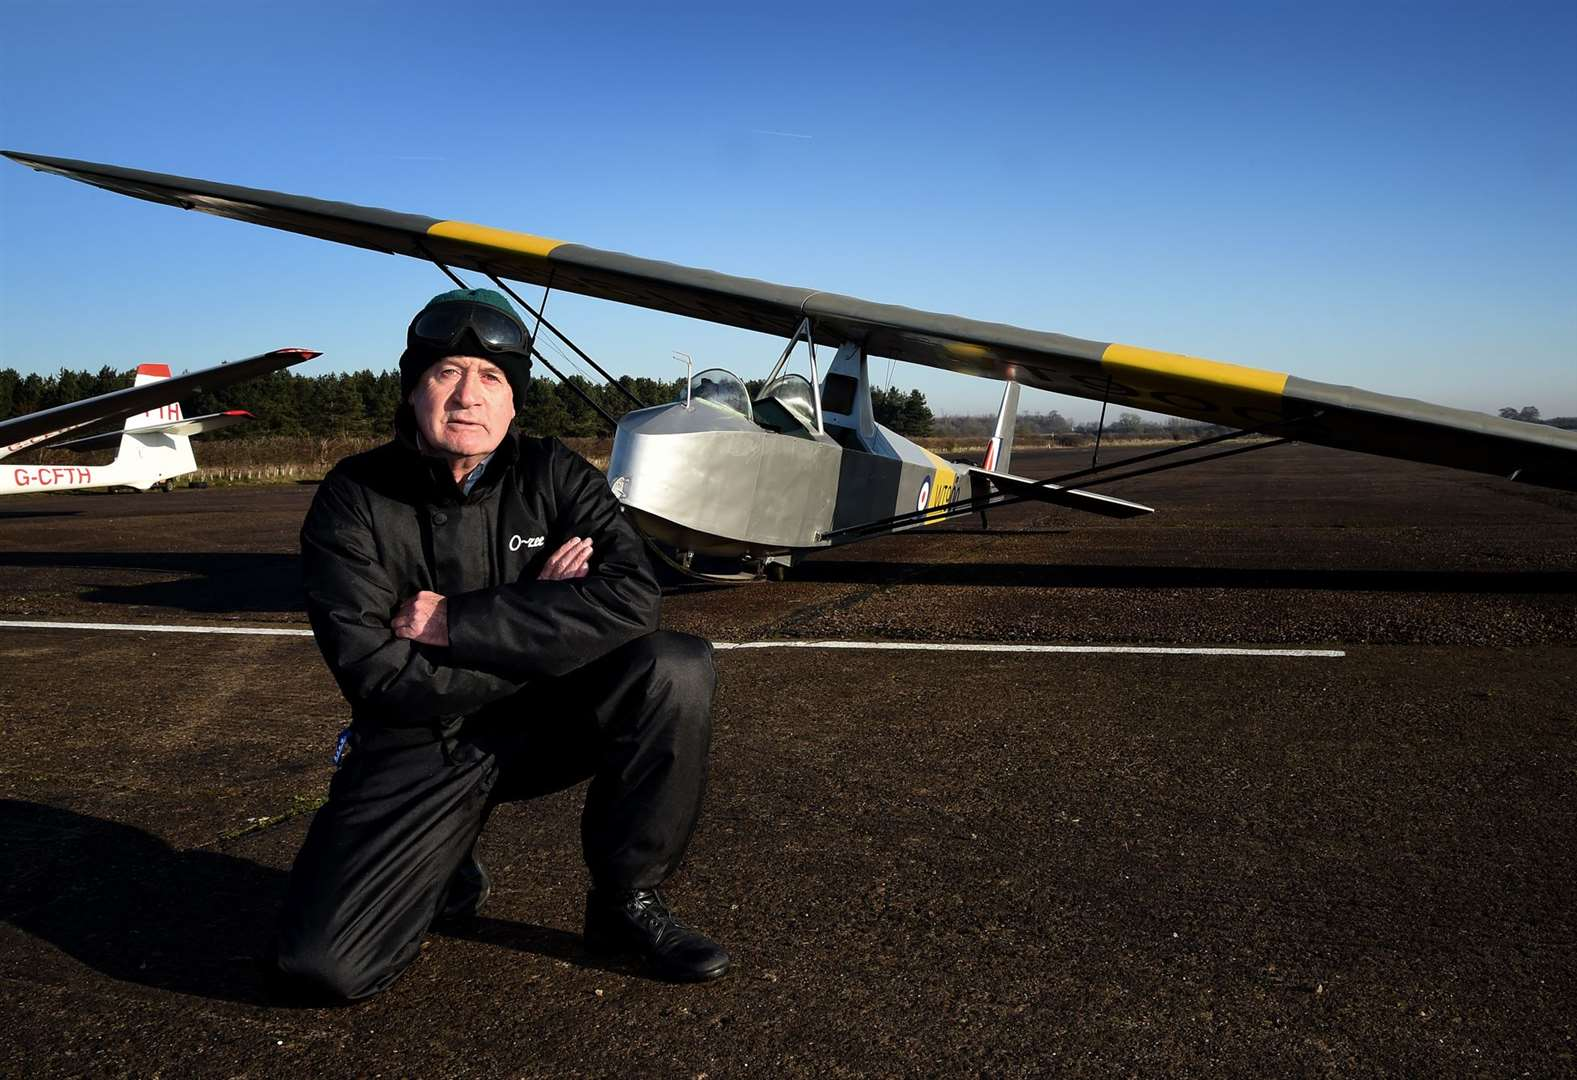 Glider pilot Roy takes to the air 50 years after first solo flight